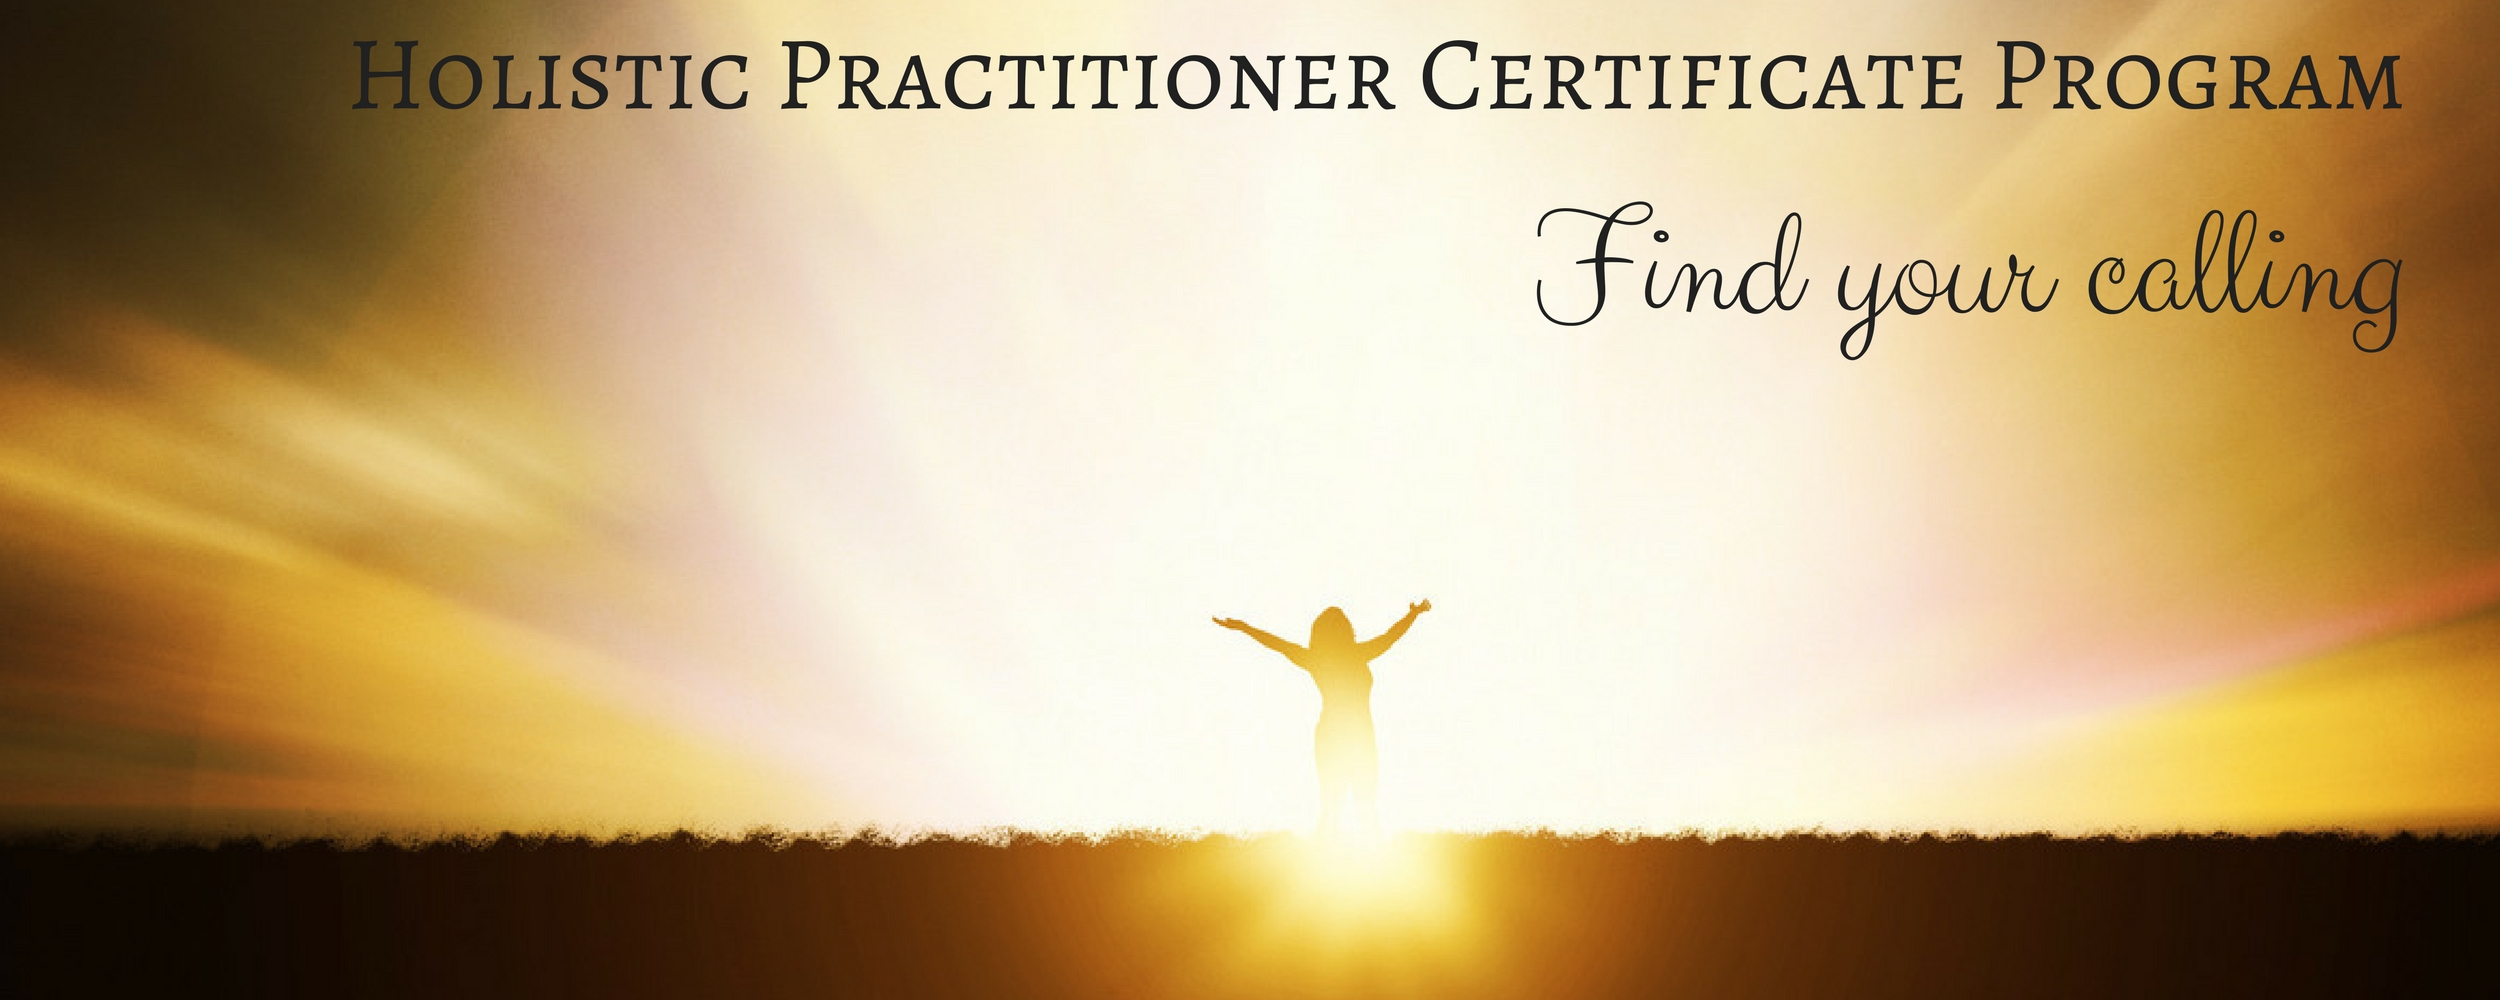 Holistic Practitioner Certificate Program The Psych Institute